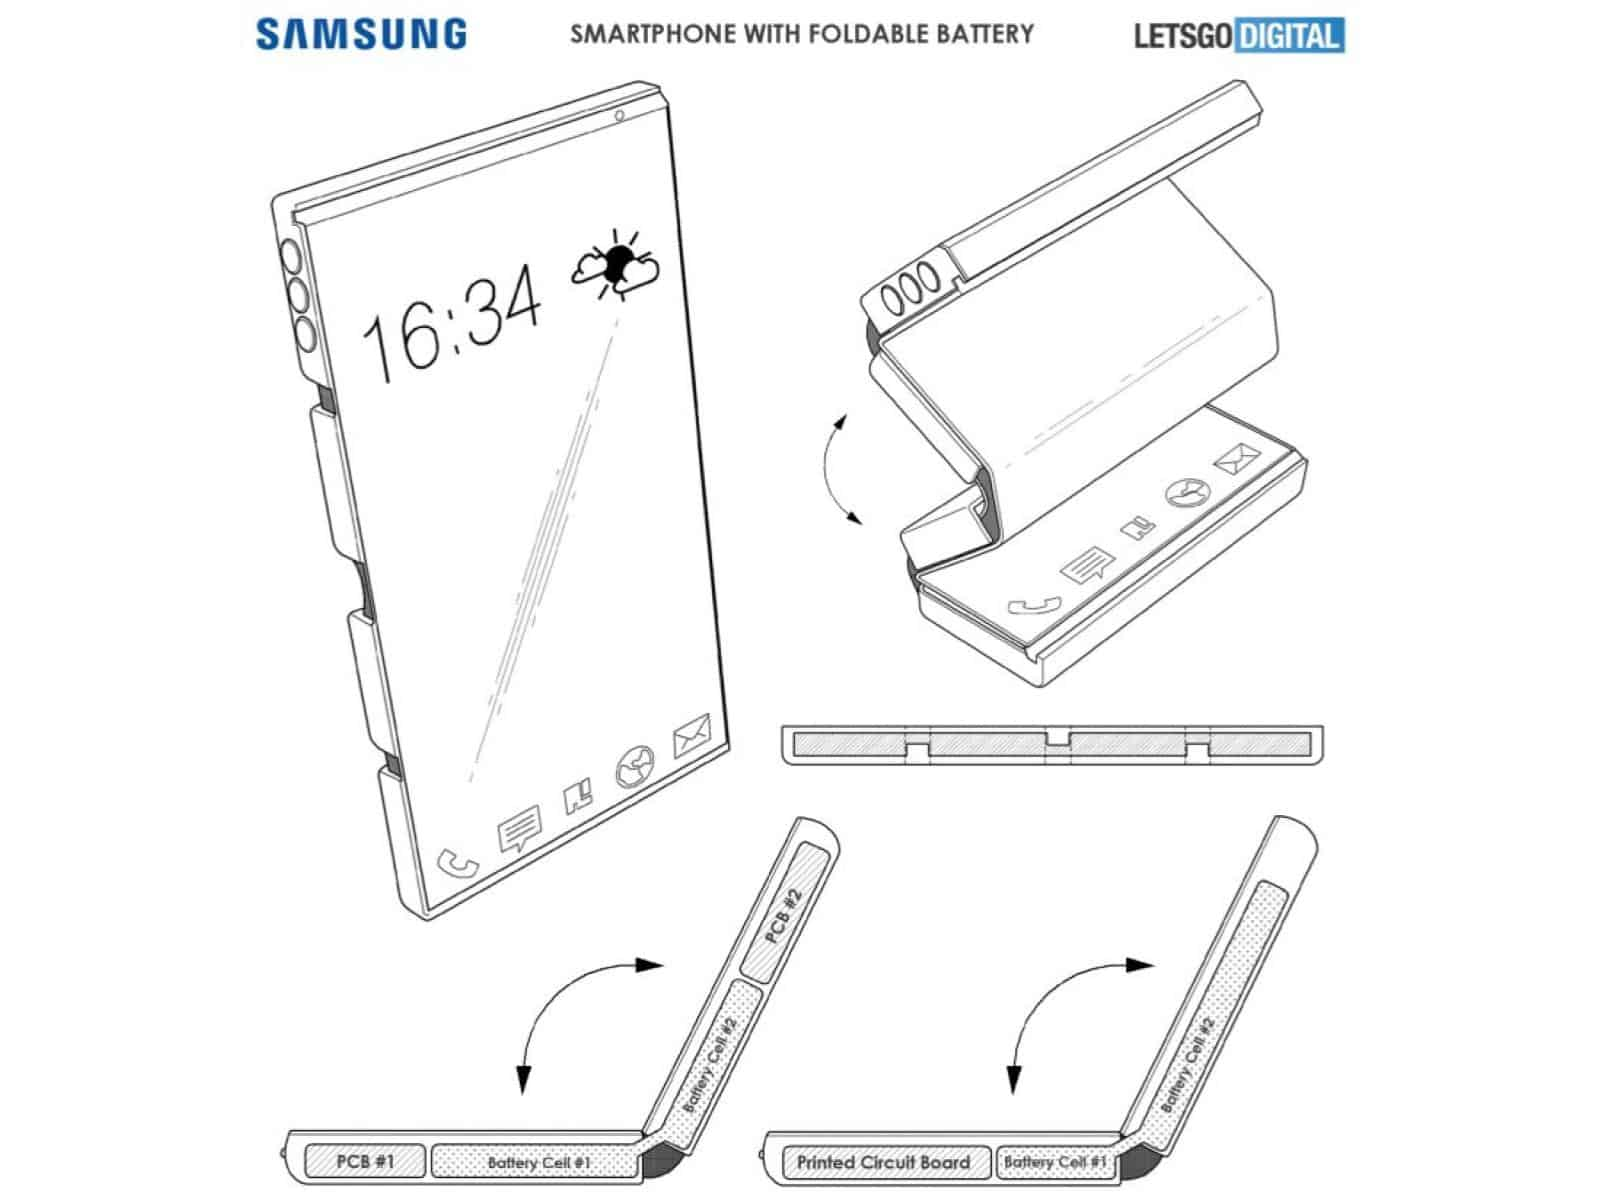 Samsung Sets Sights On Flexible Battery For Foldable